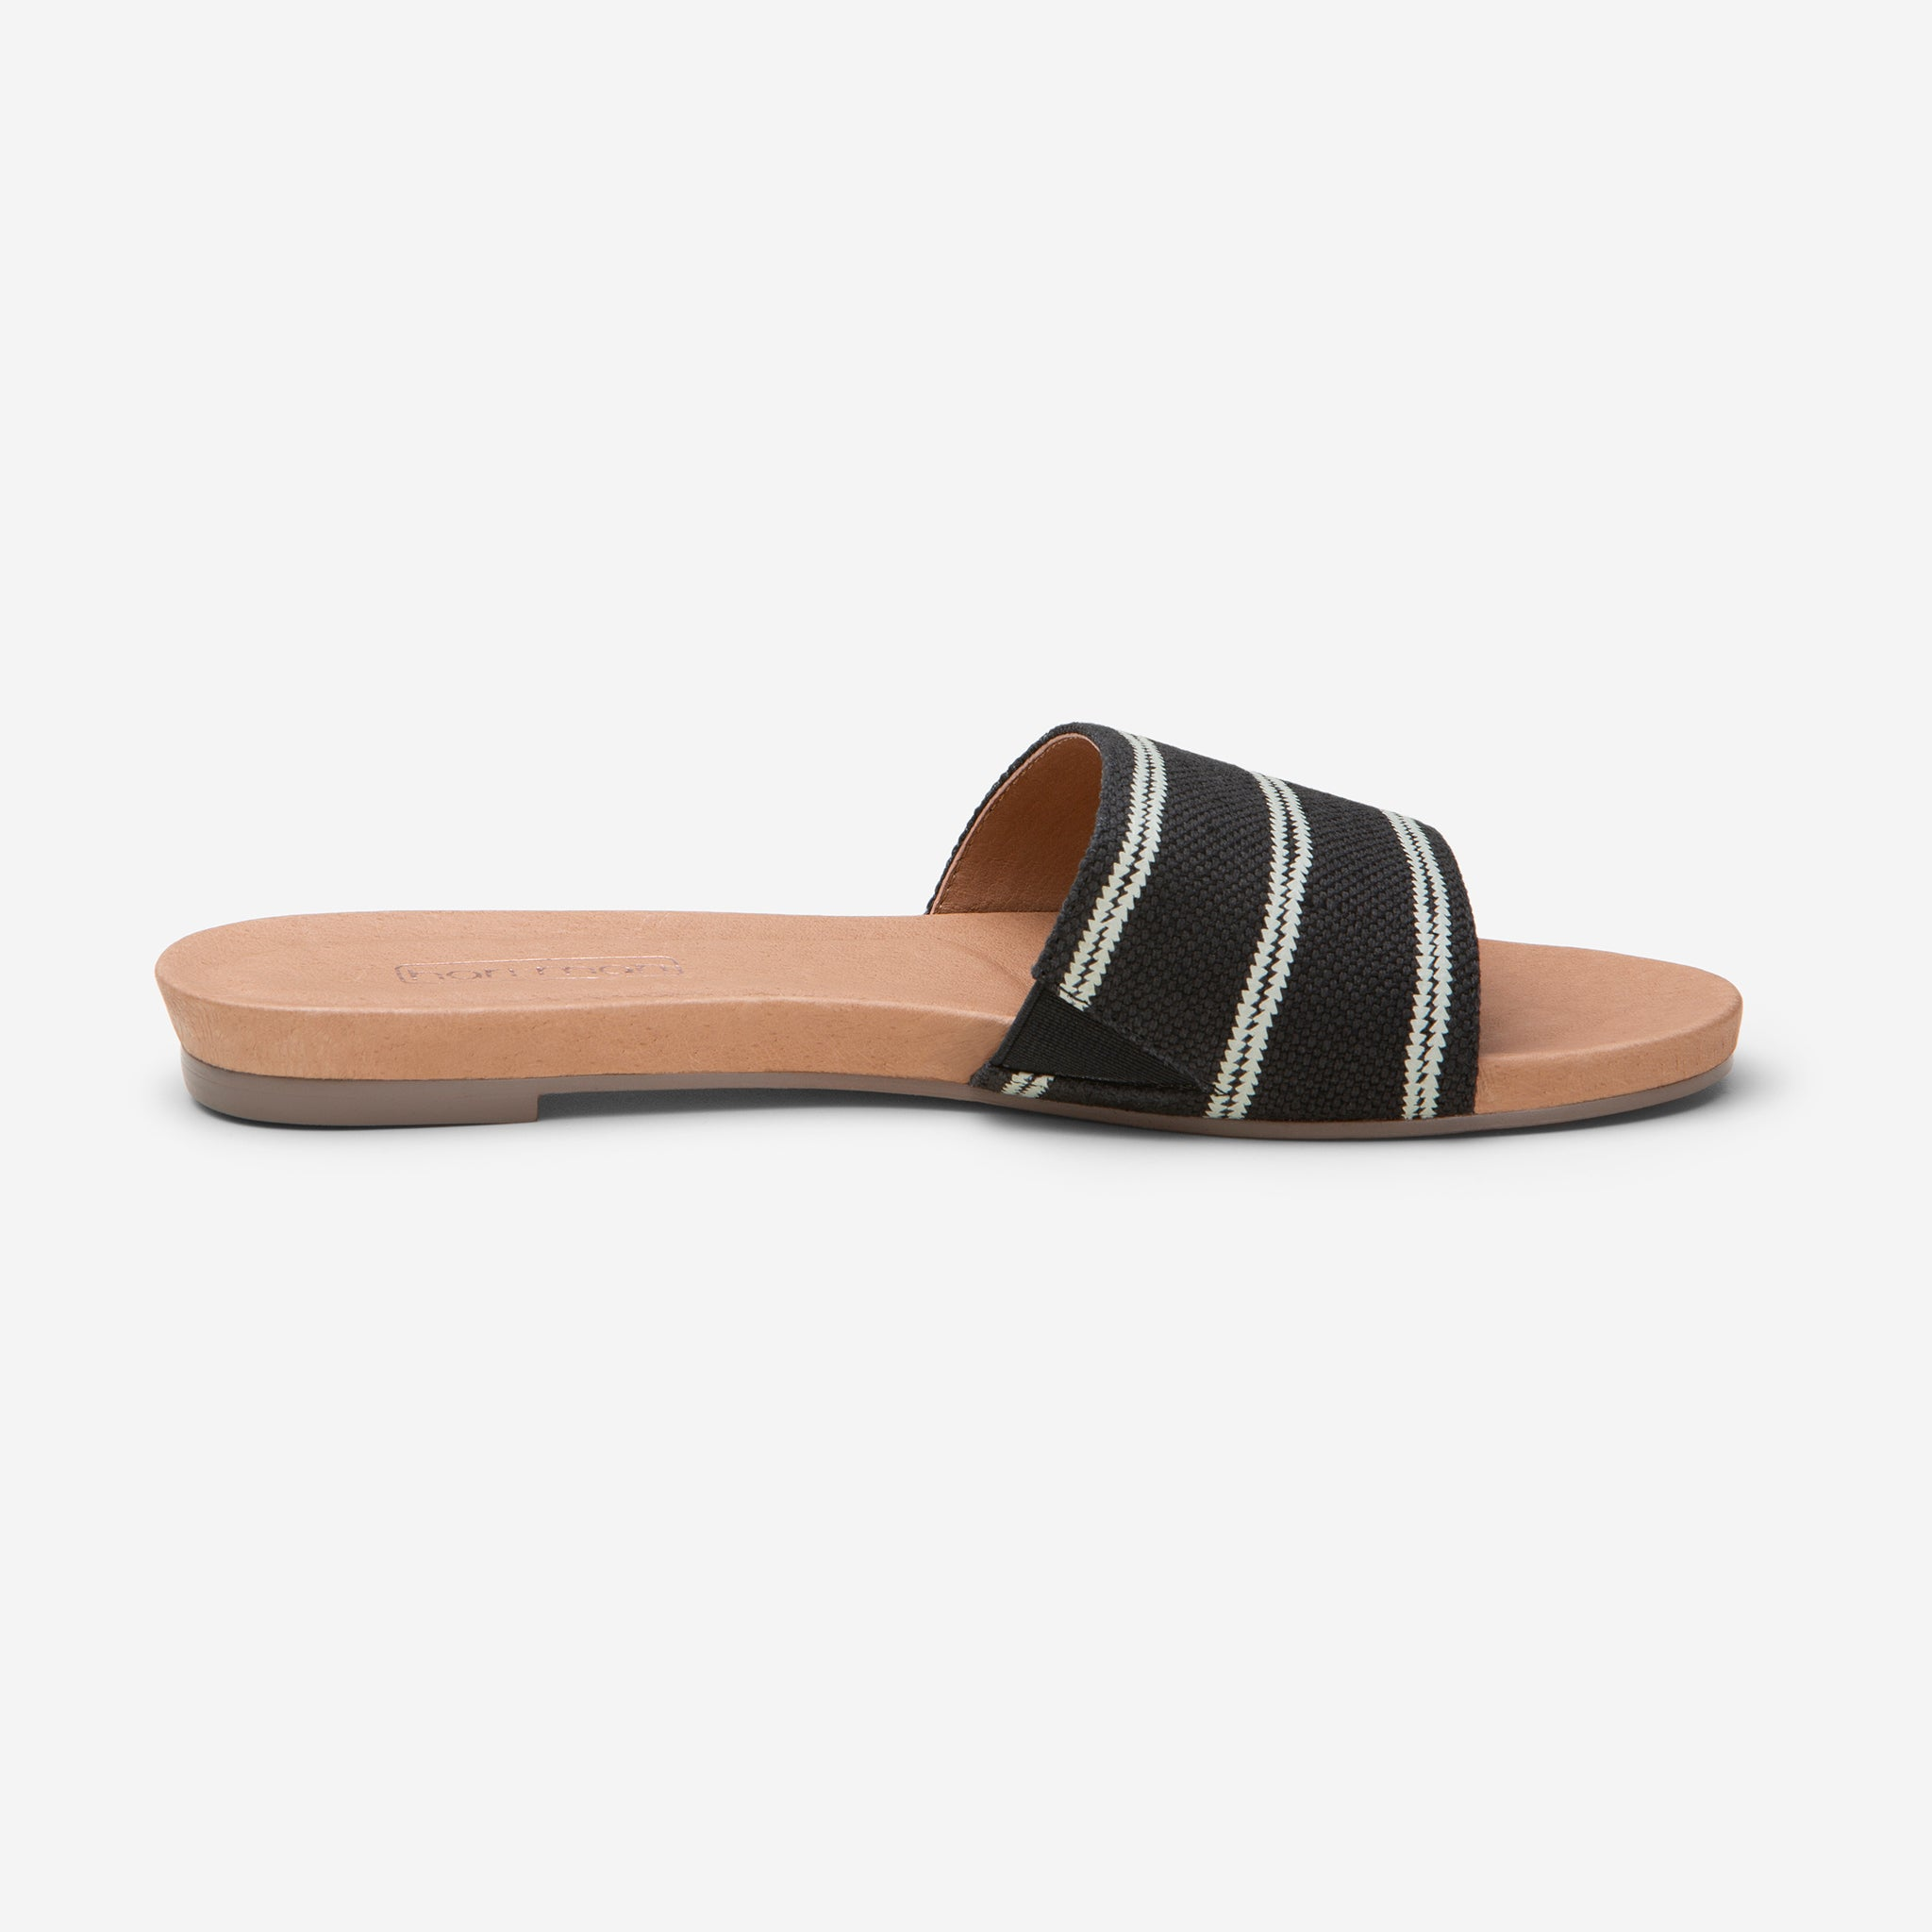 side profile of Hari Mari Women's Sydney Woven Sandal in Black on white background